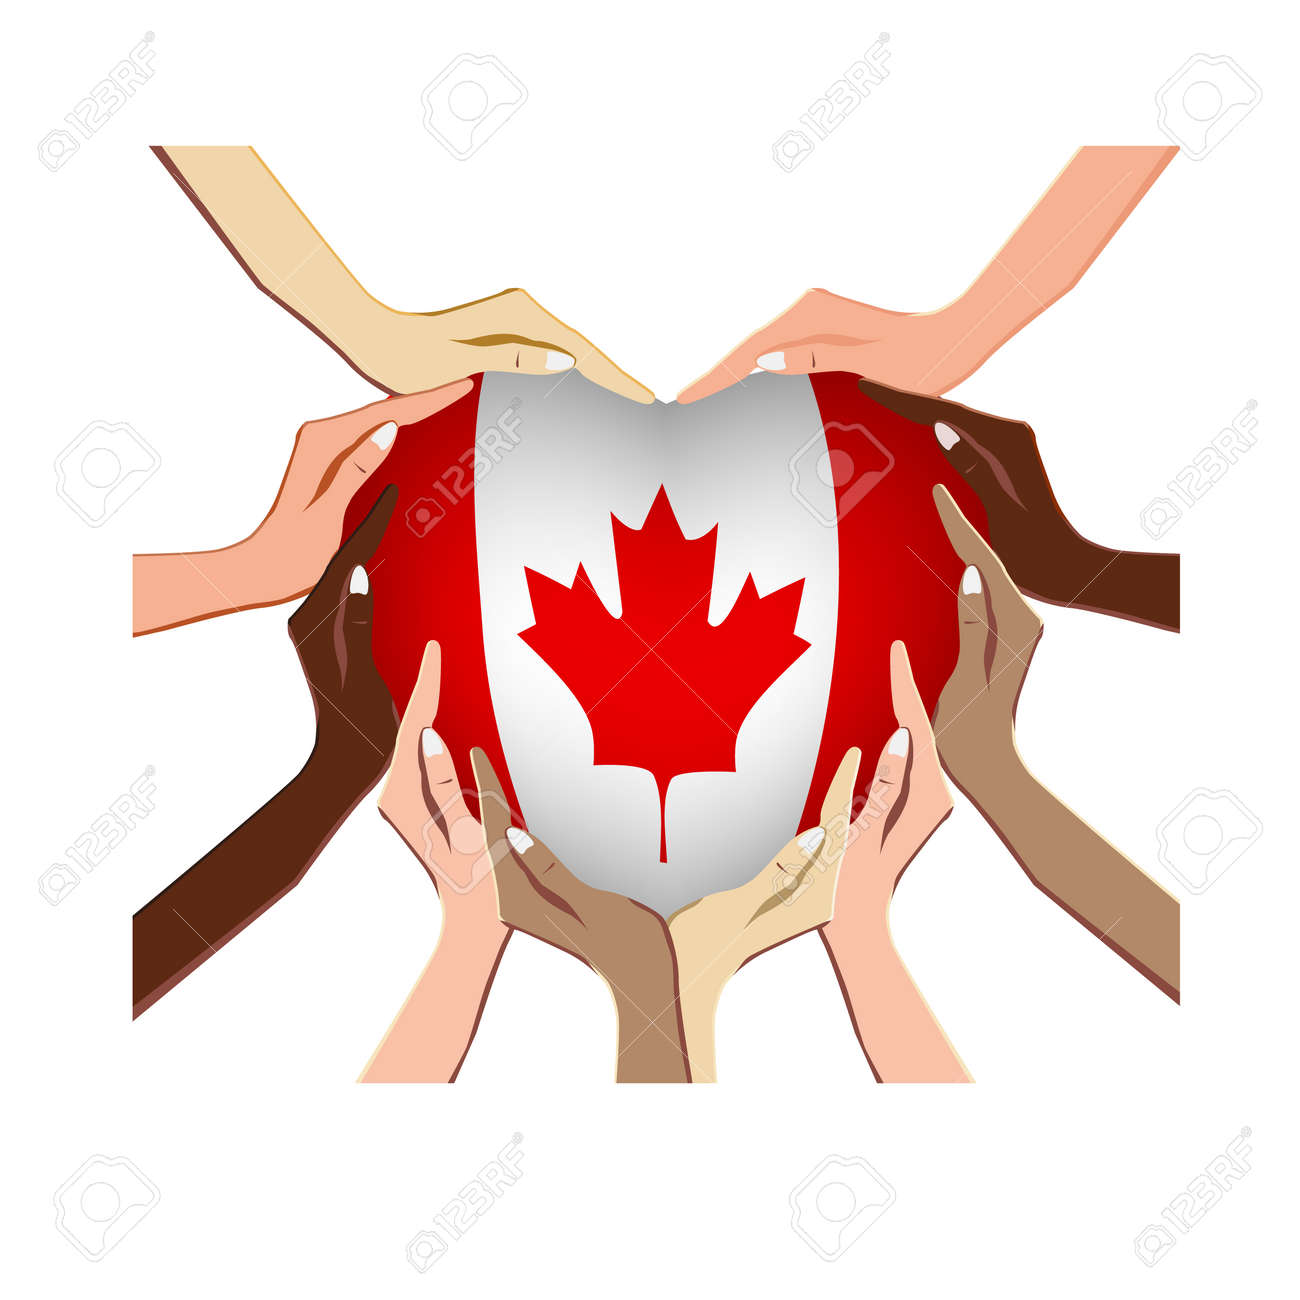 Canada Day, vector illustration with hands in the shape of the heart, inside the national flag isolated on a white background - 103984255